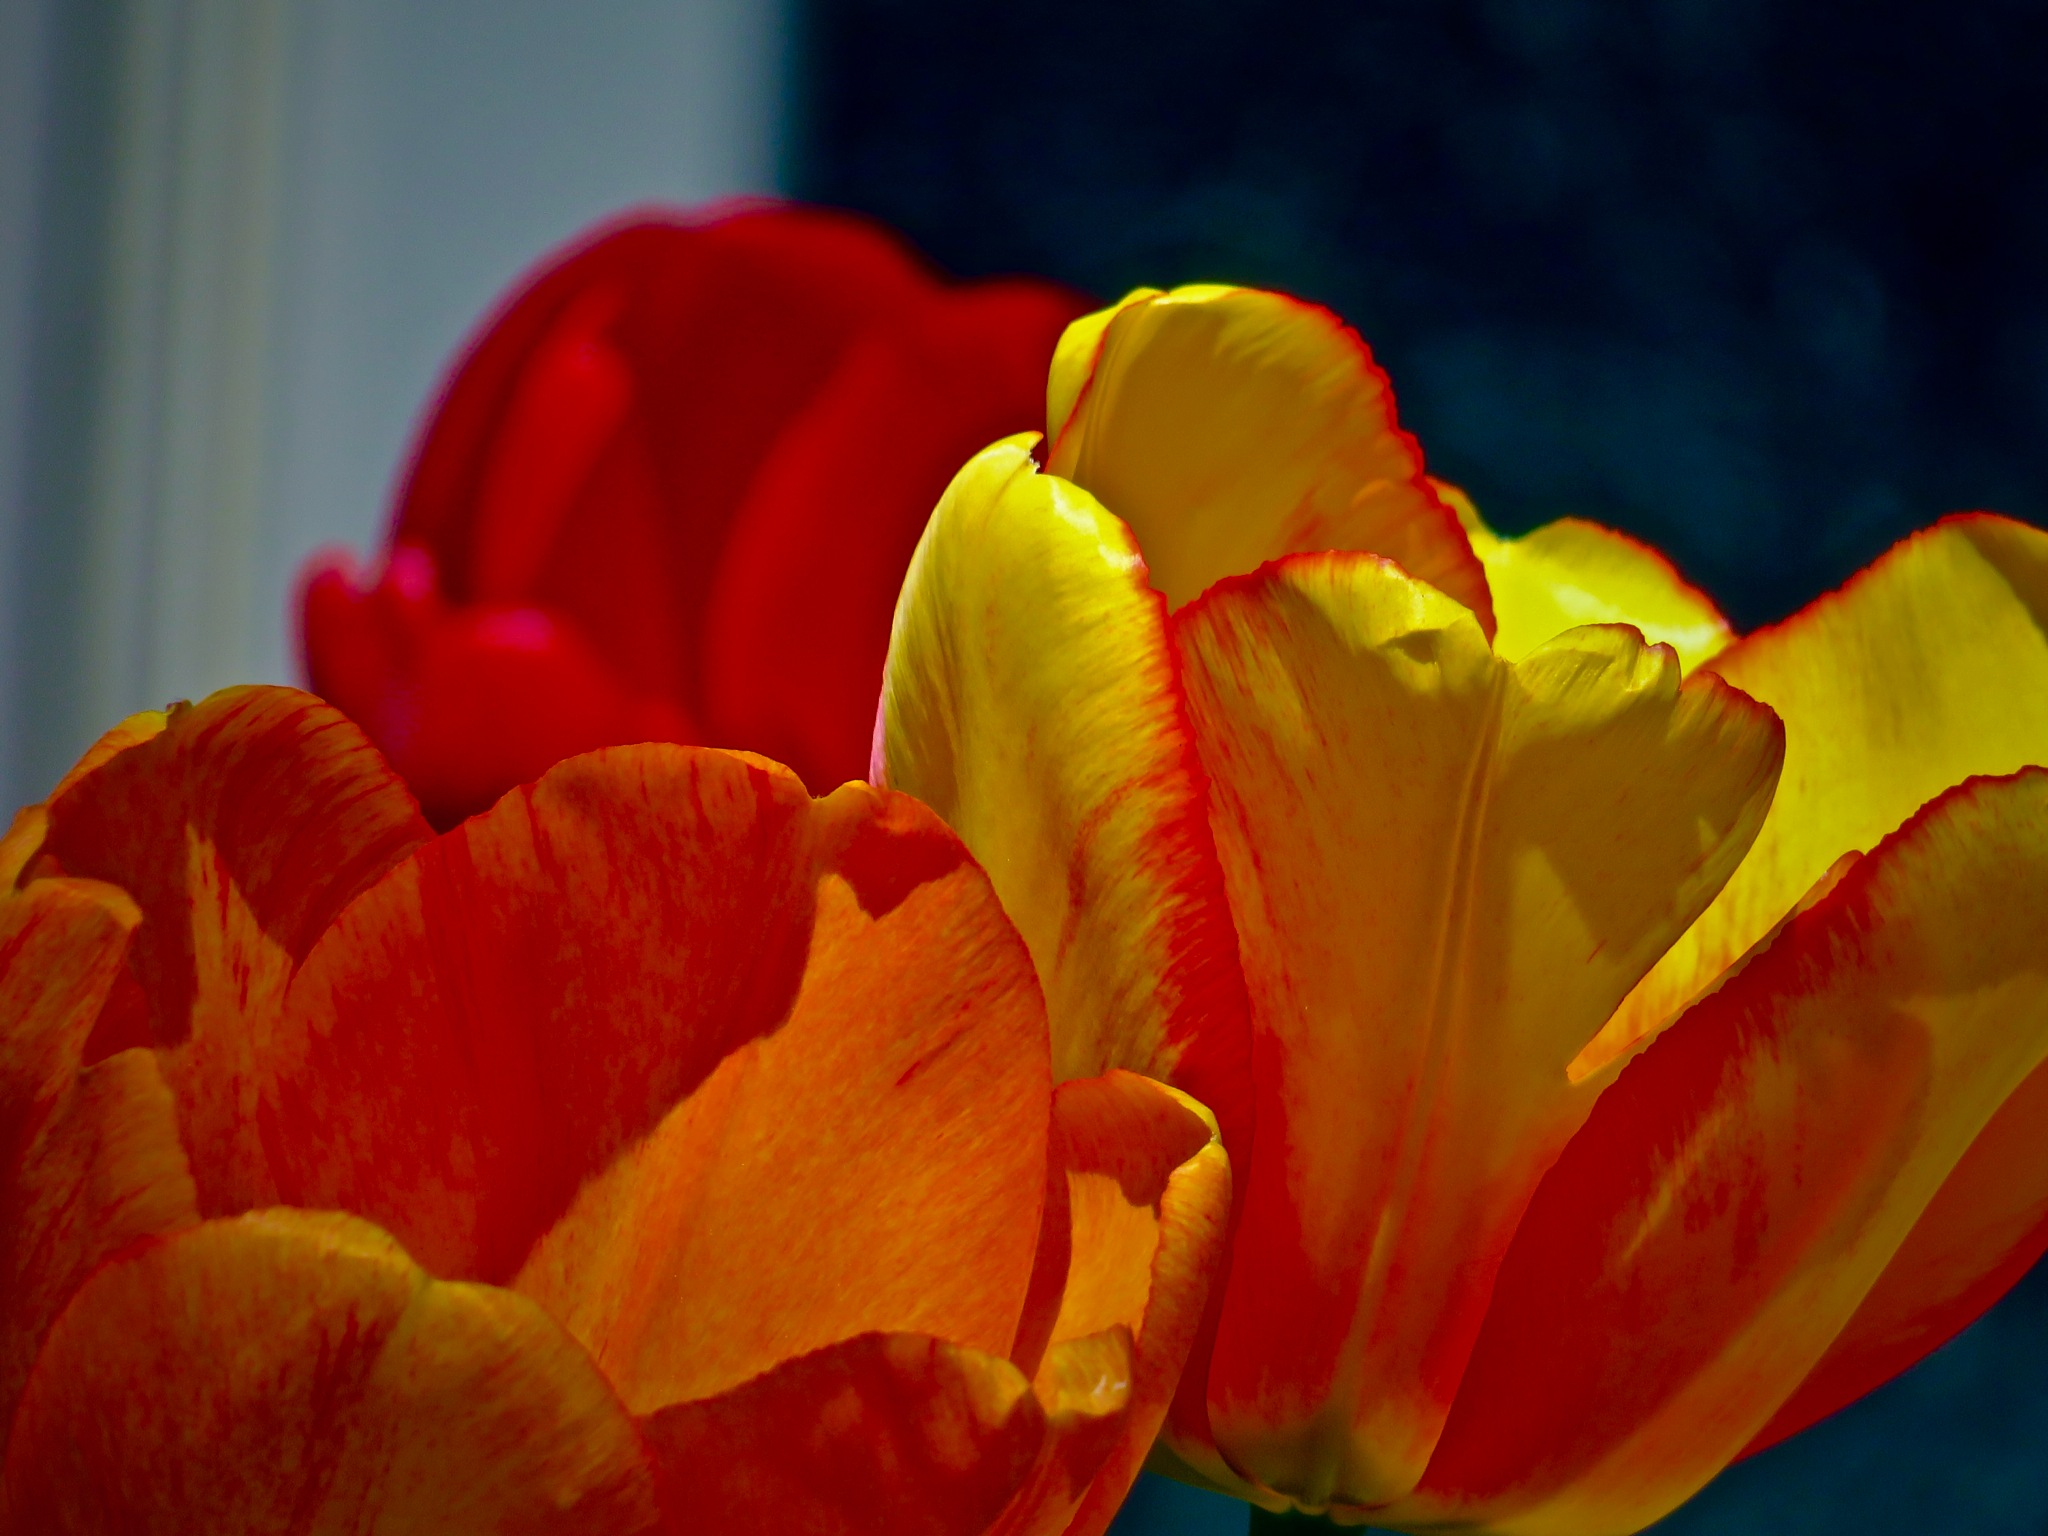 as the tulips are discovered being out n about  by David Devion